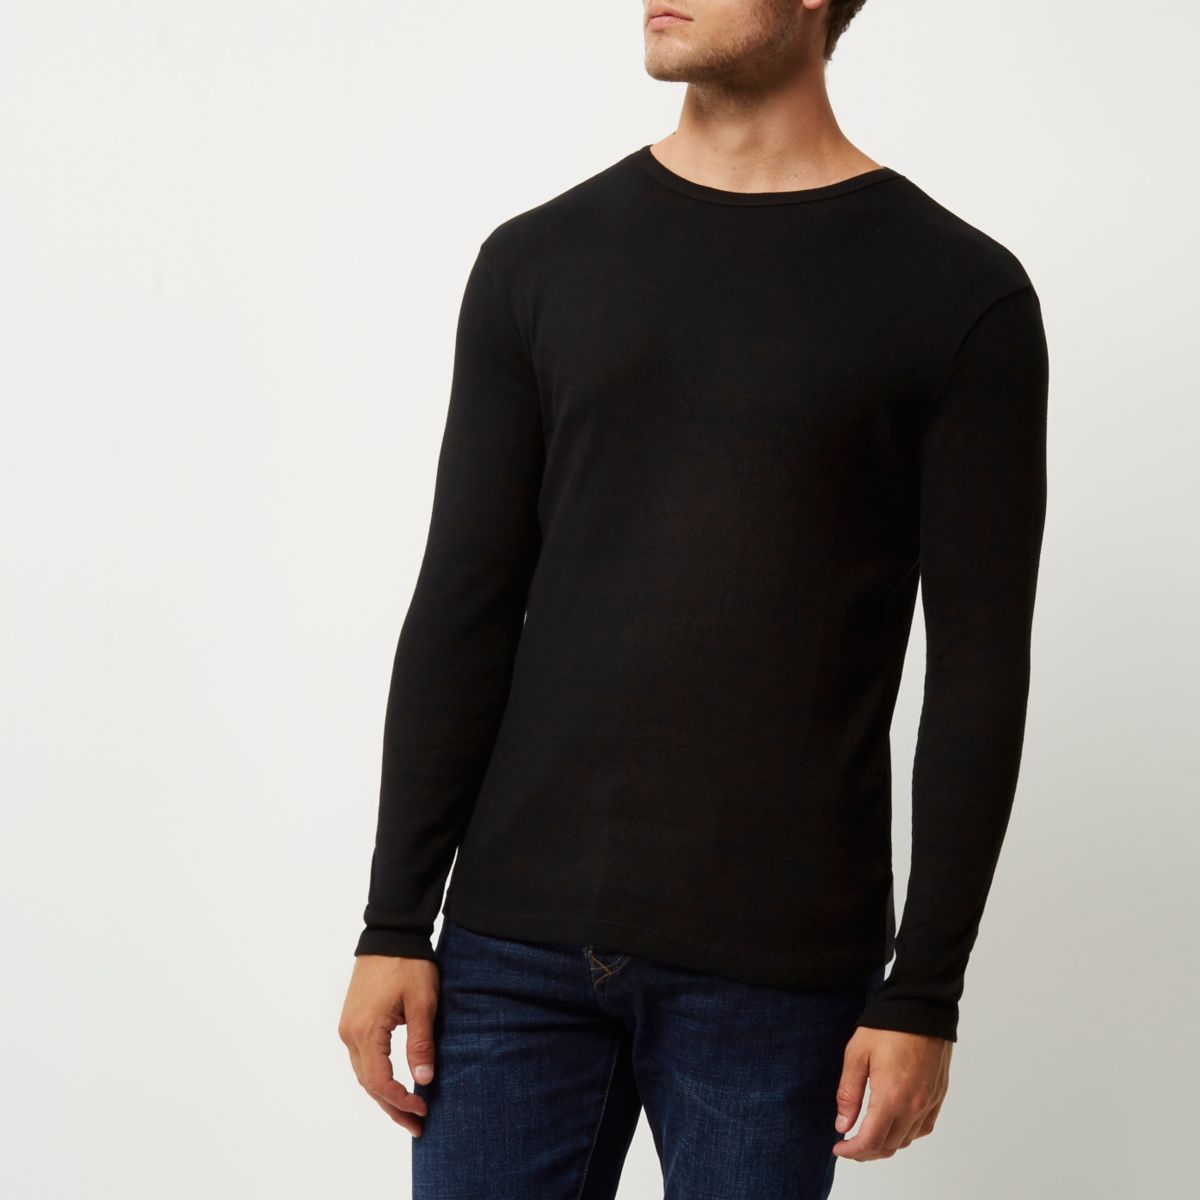 Black ribbed slim fit long sleeve t shirt long sleeve t for What is a long sleeve t shirt